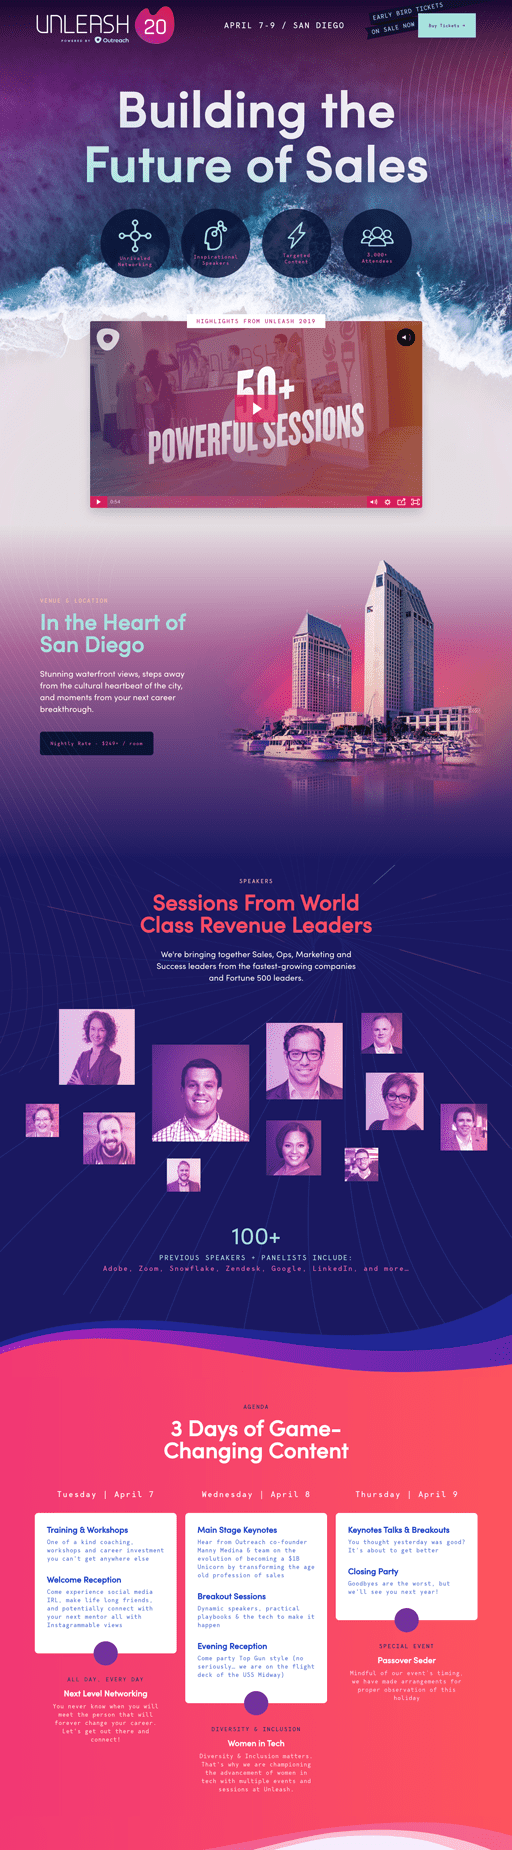 Screenshot. The colorful sales engagement conference website of Unleash 2020 repeats a purple-pink gradient through its logo, icons, backgrounds, and photos.